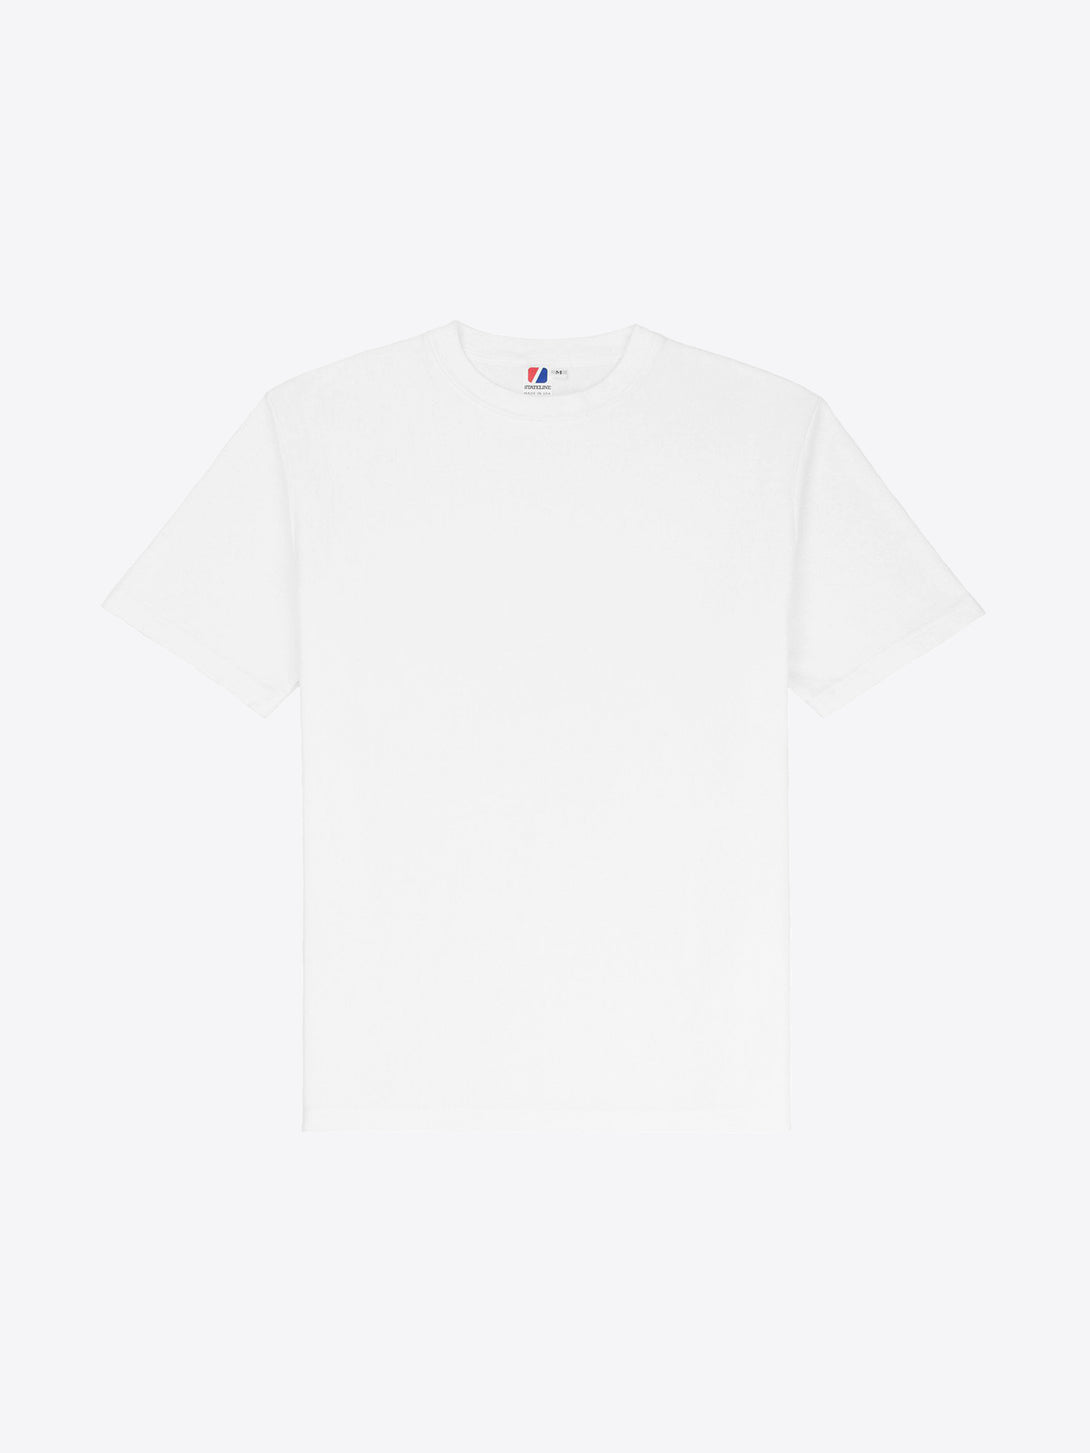 Rugby S/S Tee - White